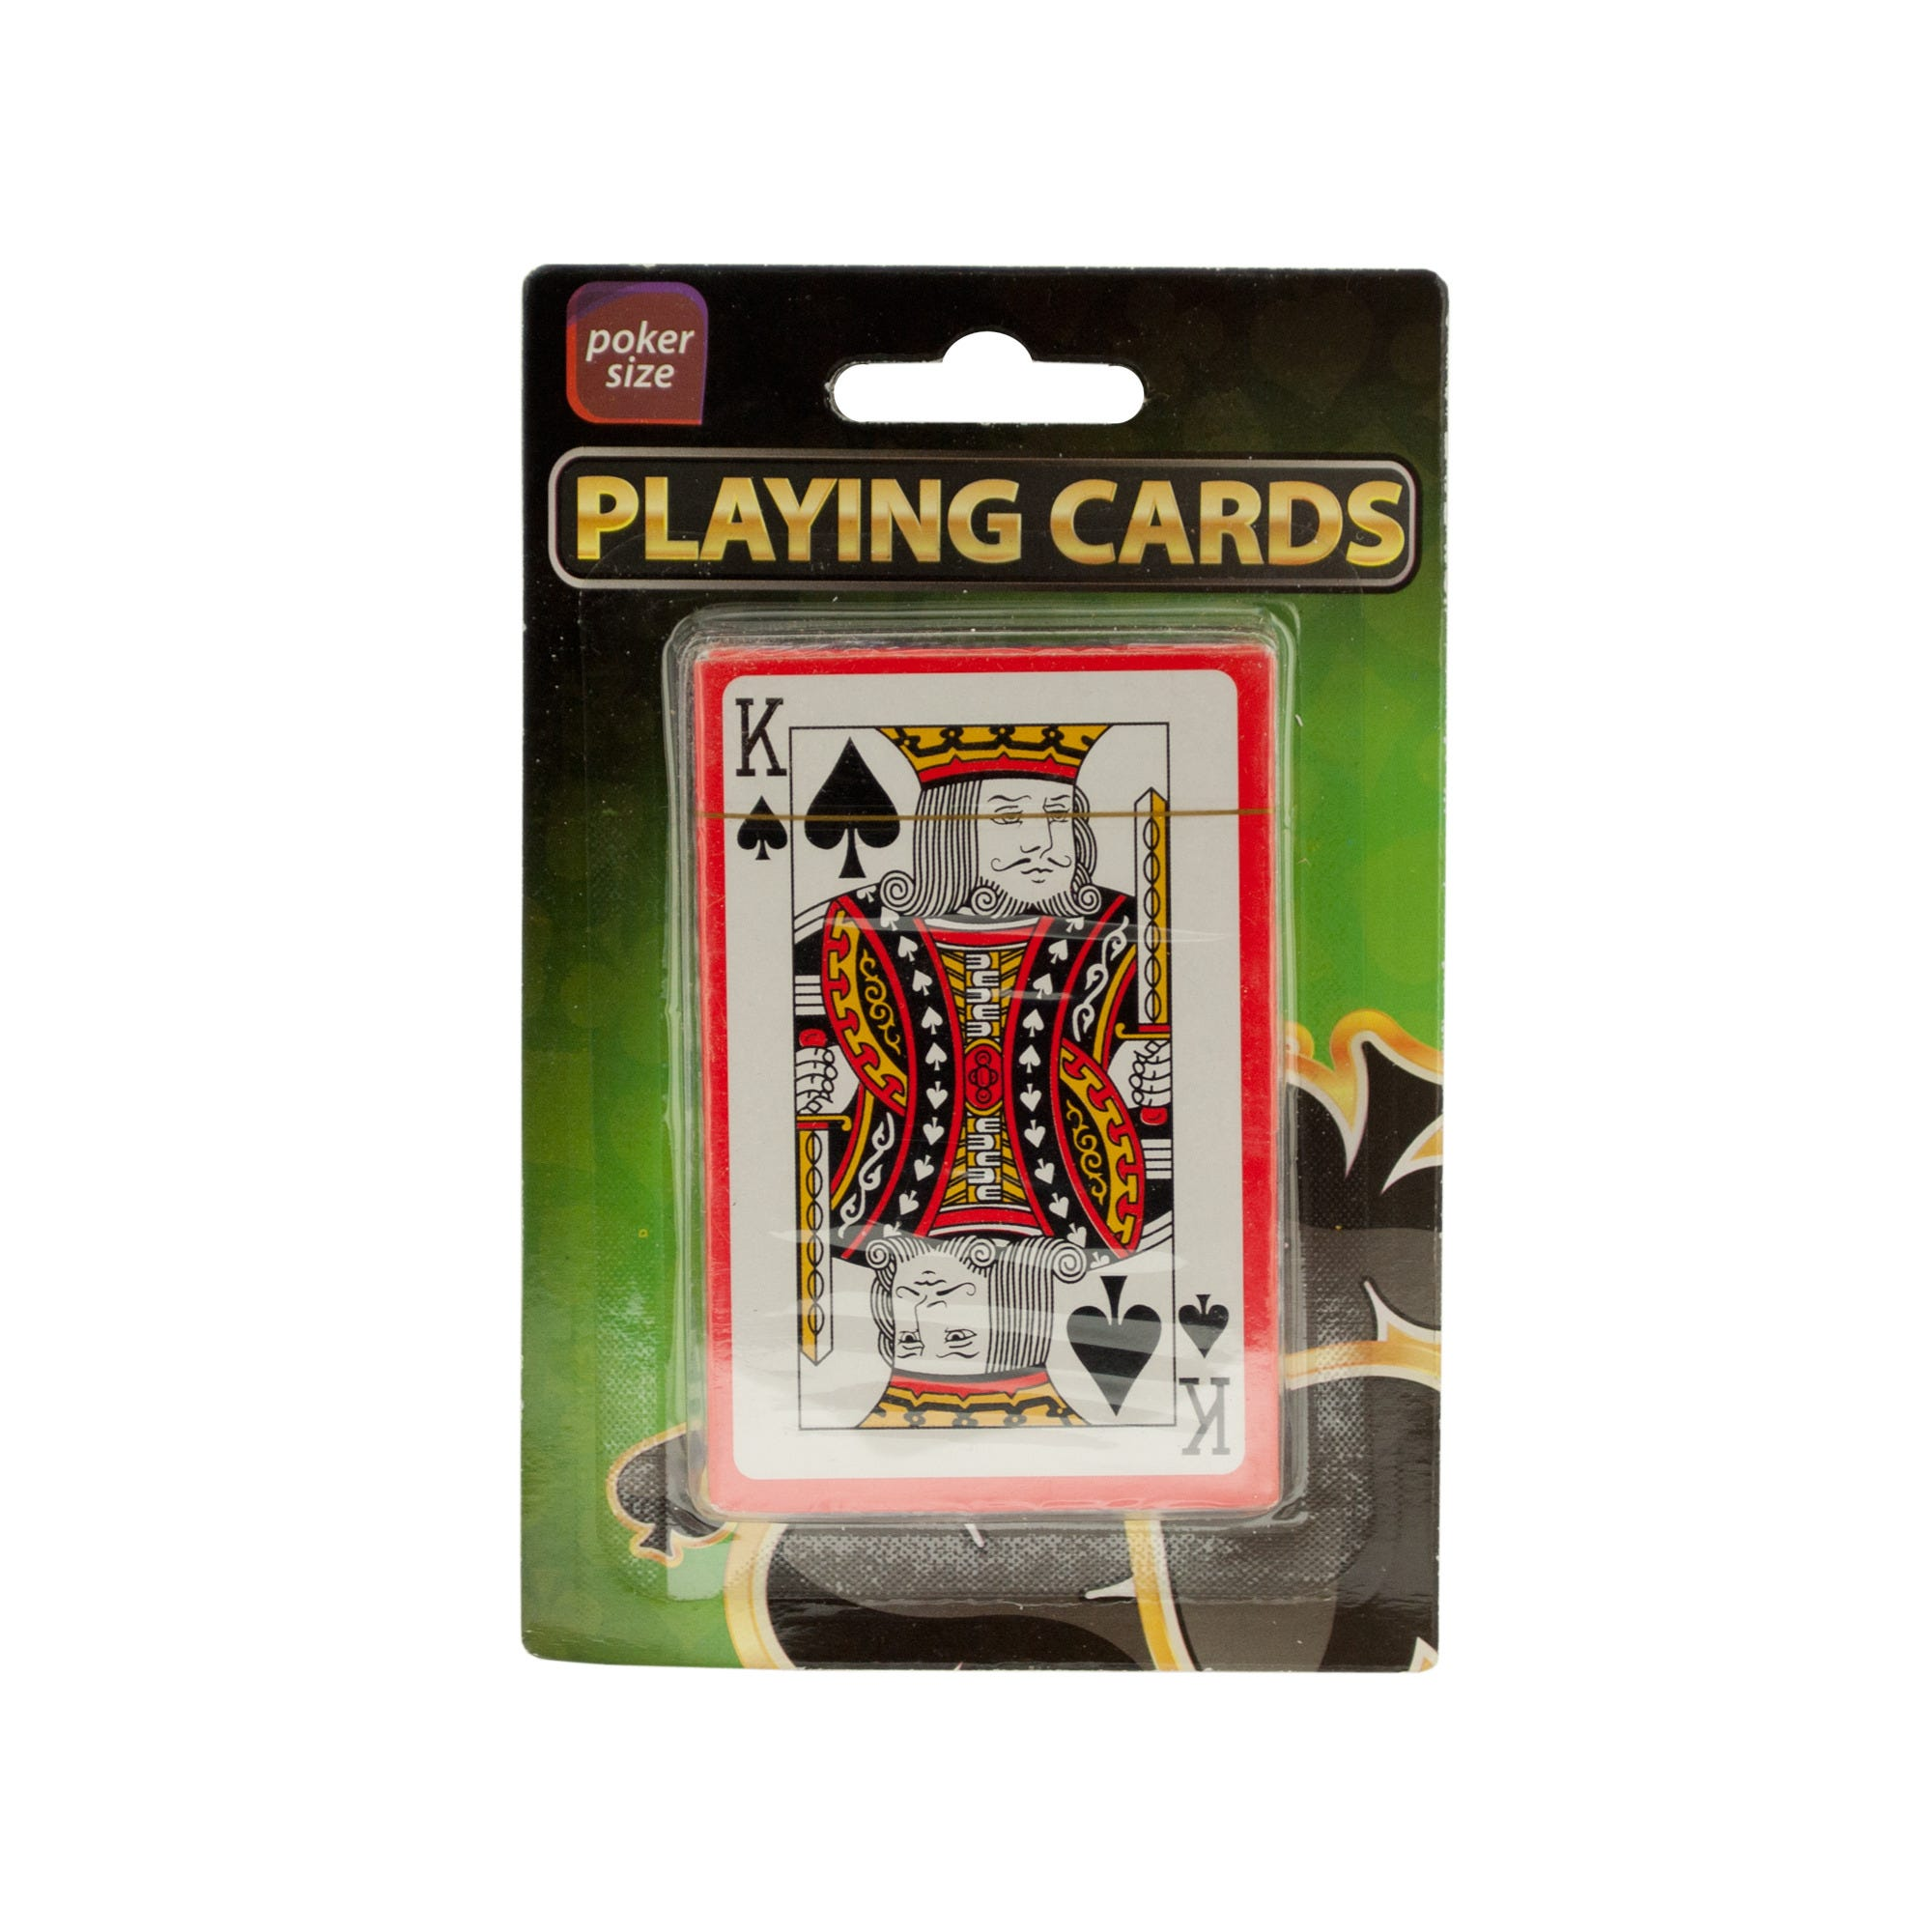 Plastic Coated Poker Size PLAYING CARDS- Qty 24